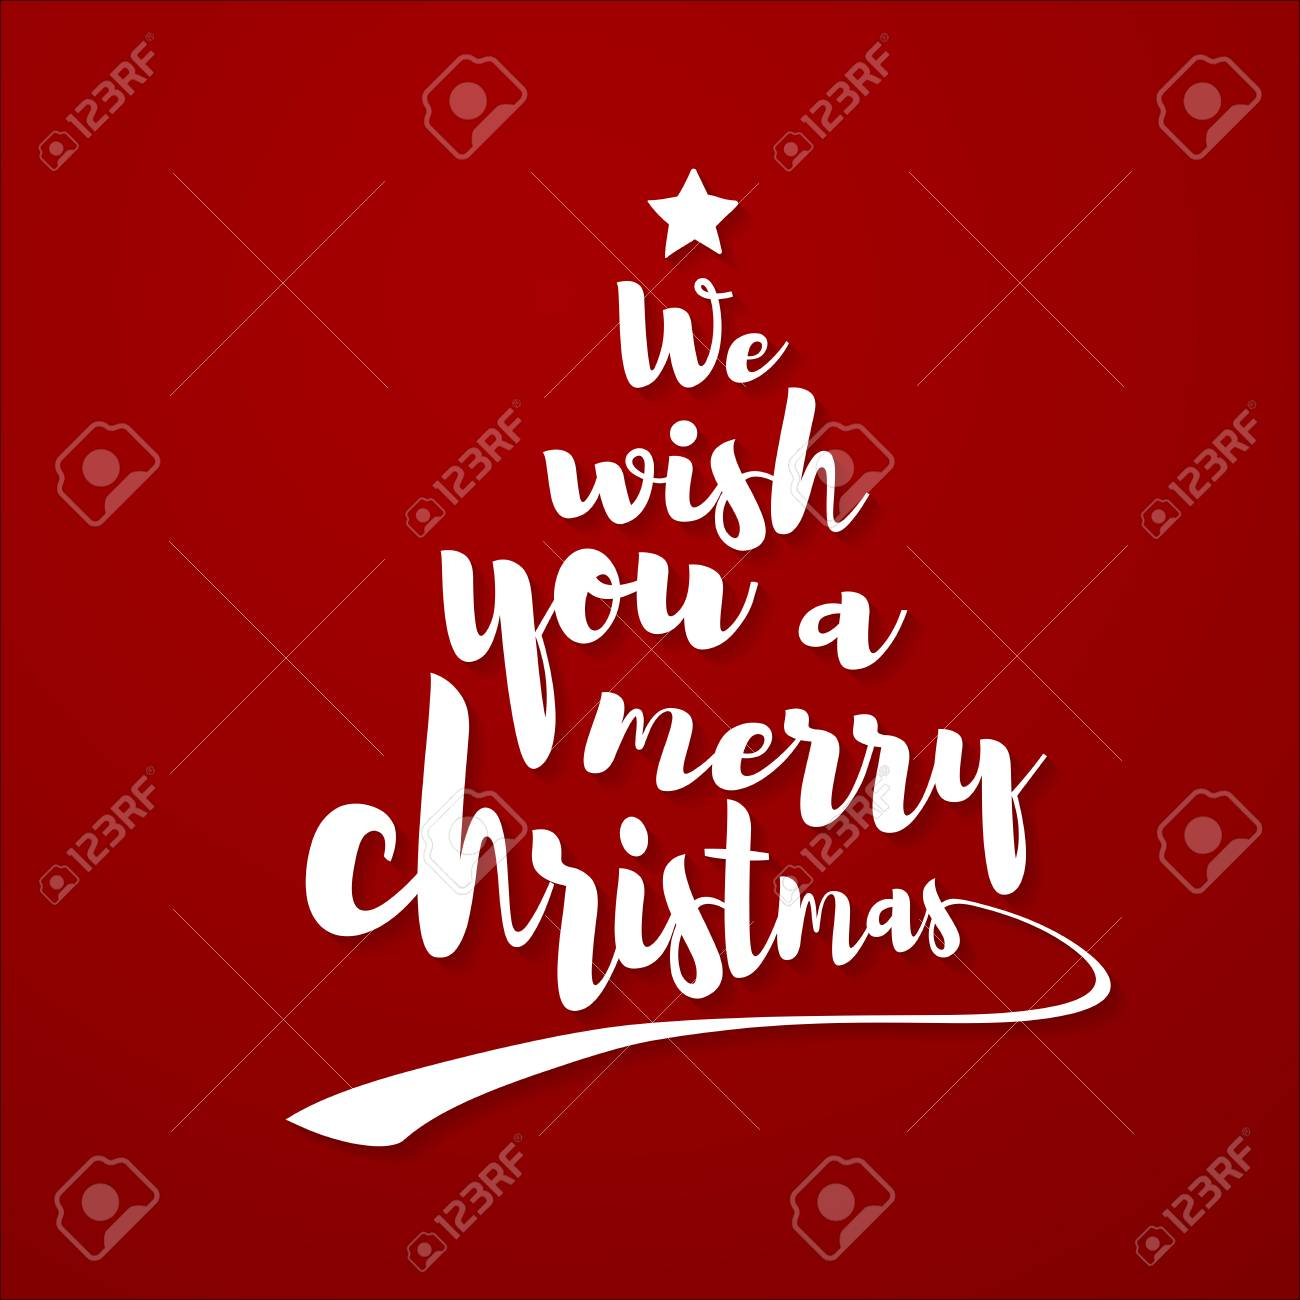 We wish you a merry christmas quote. Calligraphic text makes..